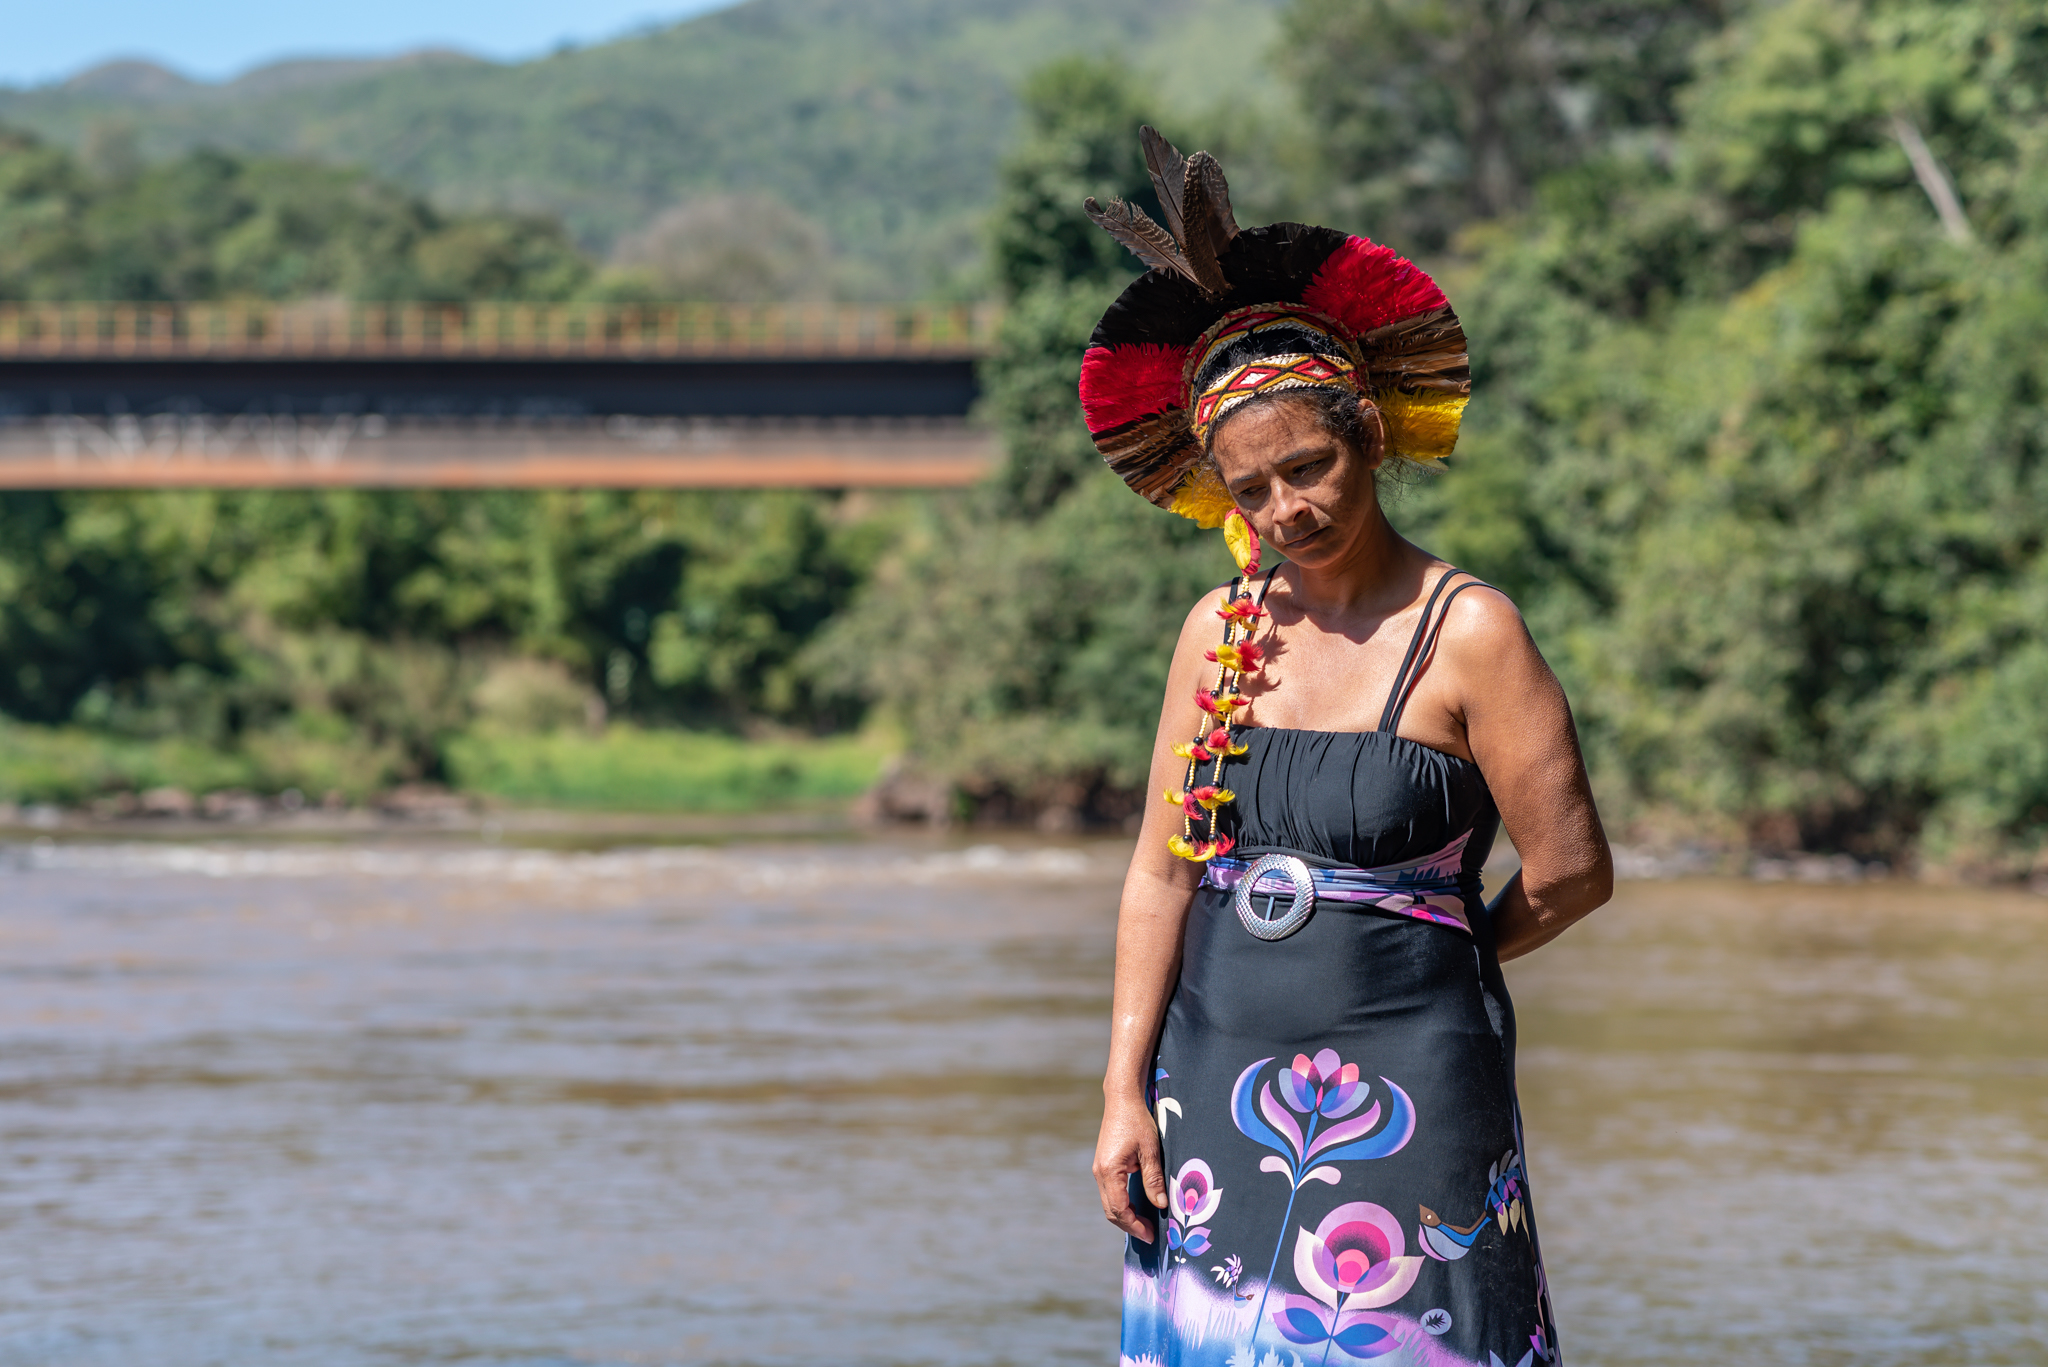 Angohó Ha-ha-hãe is a shaman and one of the leaders of Naô Xohã indigenous village, which is requesting to be temporarily relocated by Vale due to the river pollution. Image by Luiz Guilherme Fernandes for Mongabay